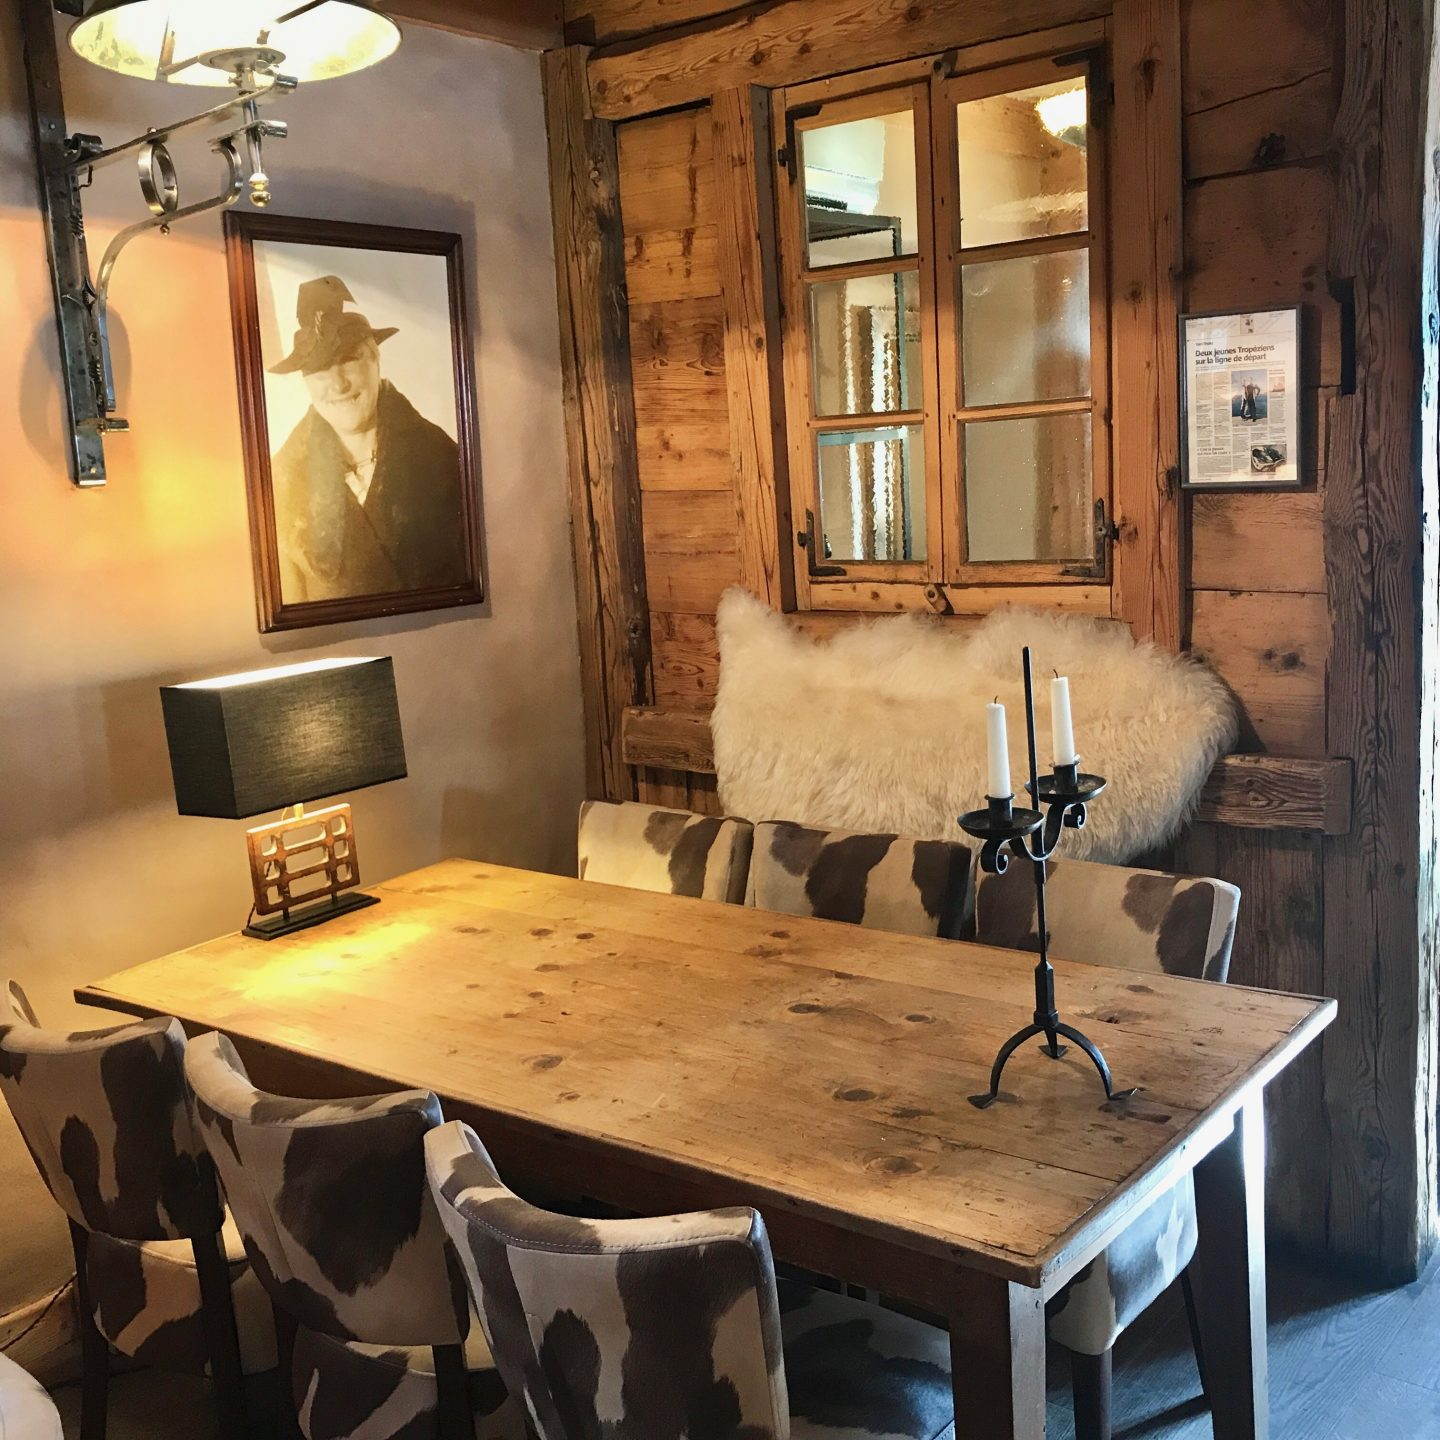 16403da8044 I was very fortunate to have one of the Sotheby´s real estate agents show  me around some of the most luxurious homes in Megève, so I could share with  you my ...